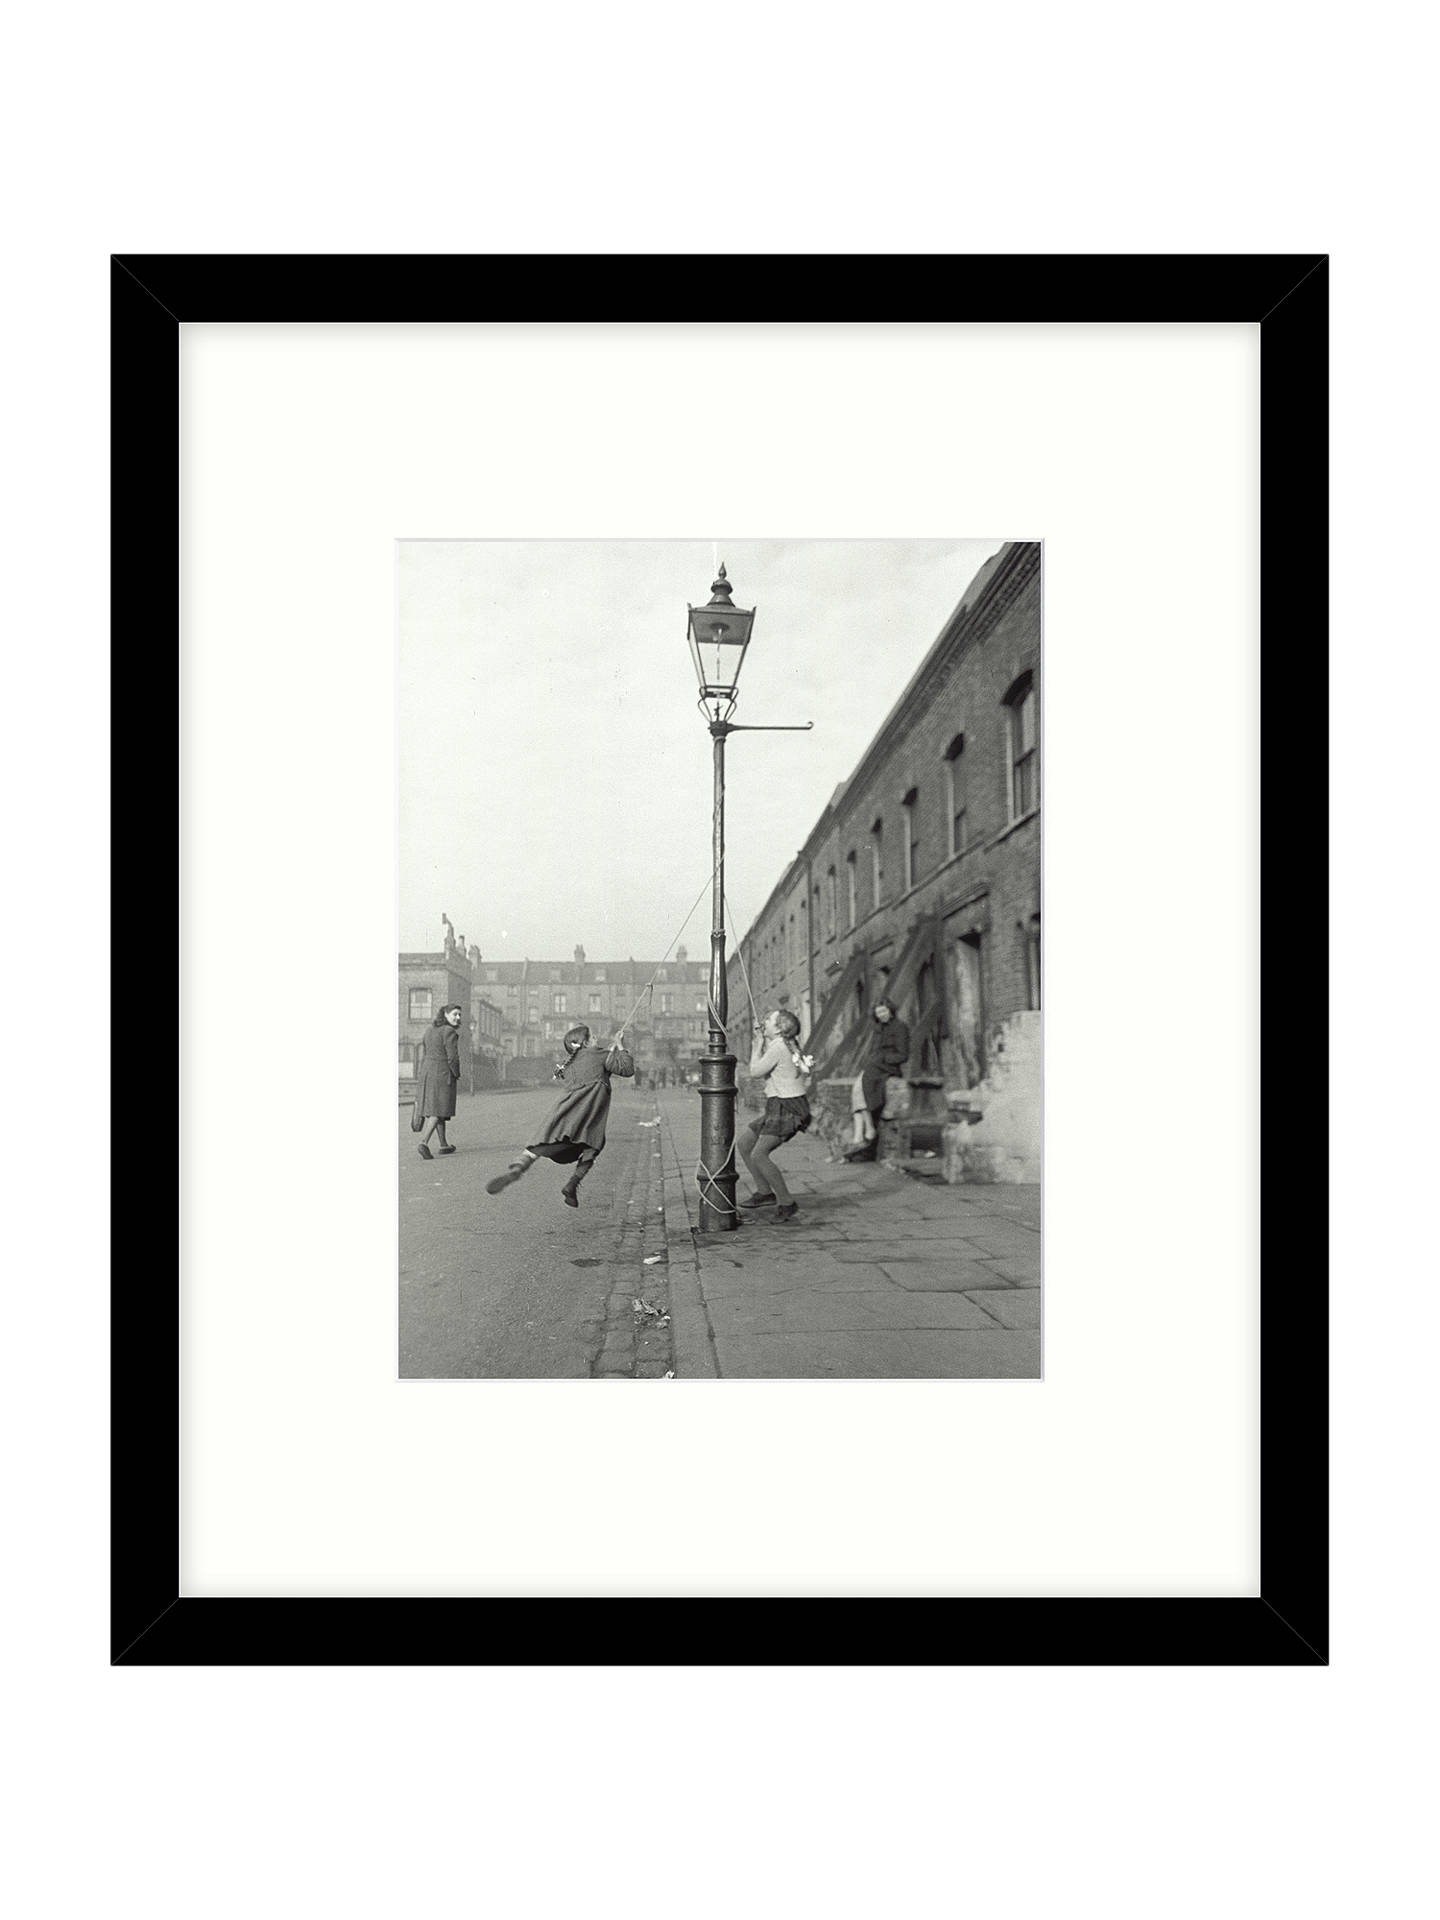 BuyGetty Images Gallery - Children Swinging 1950 Framed Print, 49 x 57cm Online at johnlewis.com